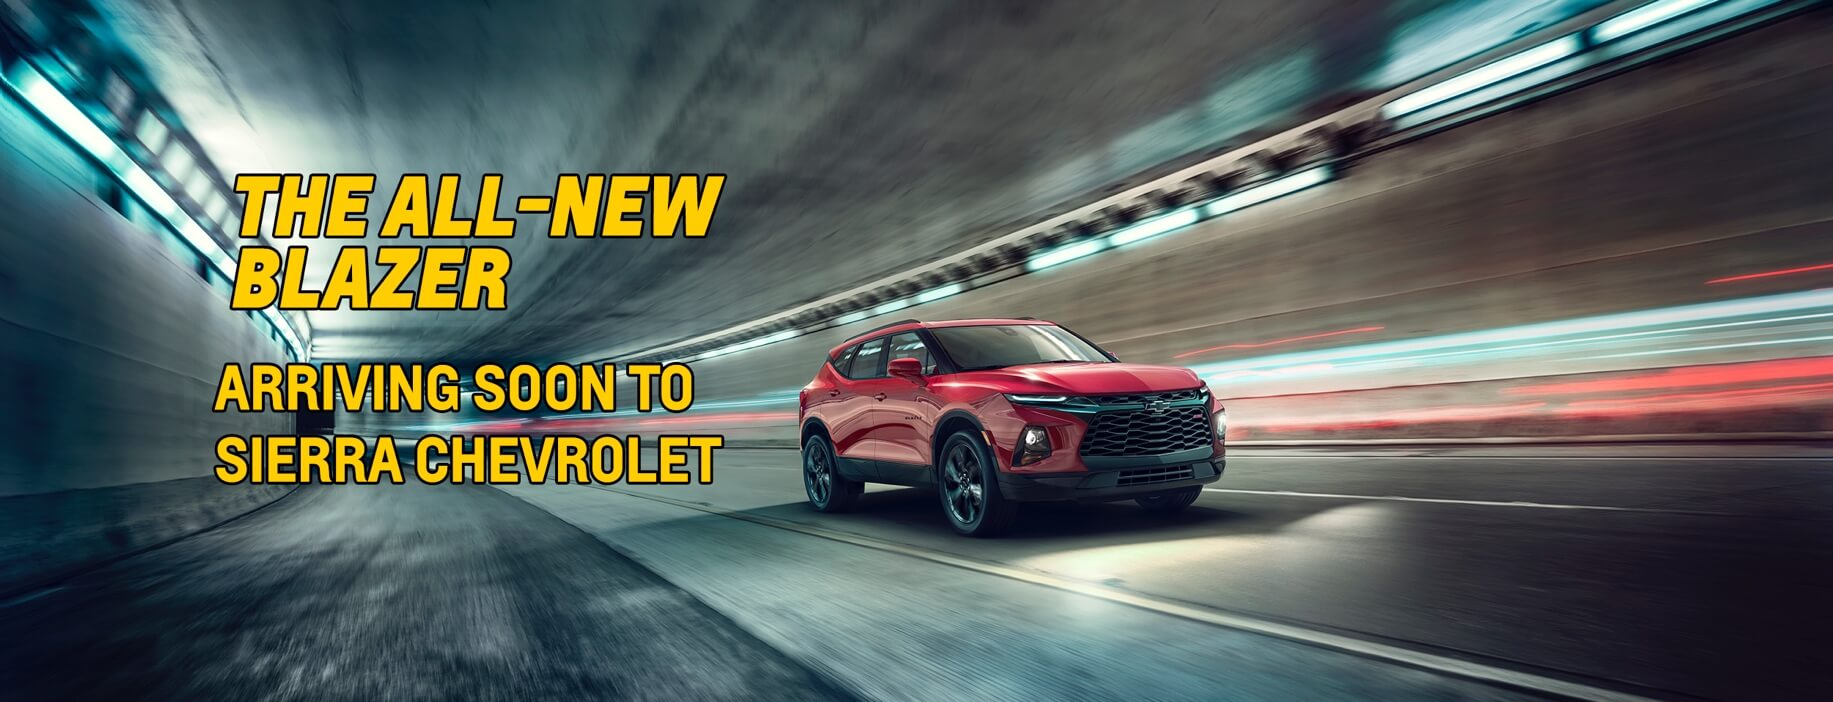 2019 Chevrolet Blazer Coming Soon to Sierra Chevrolet